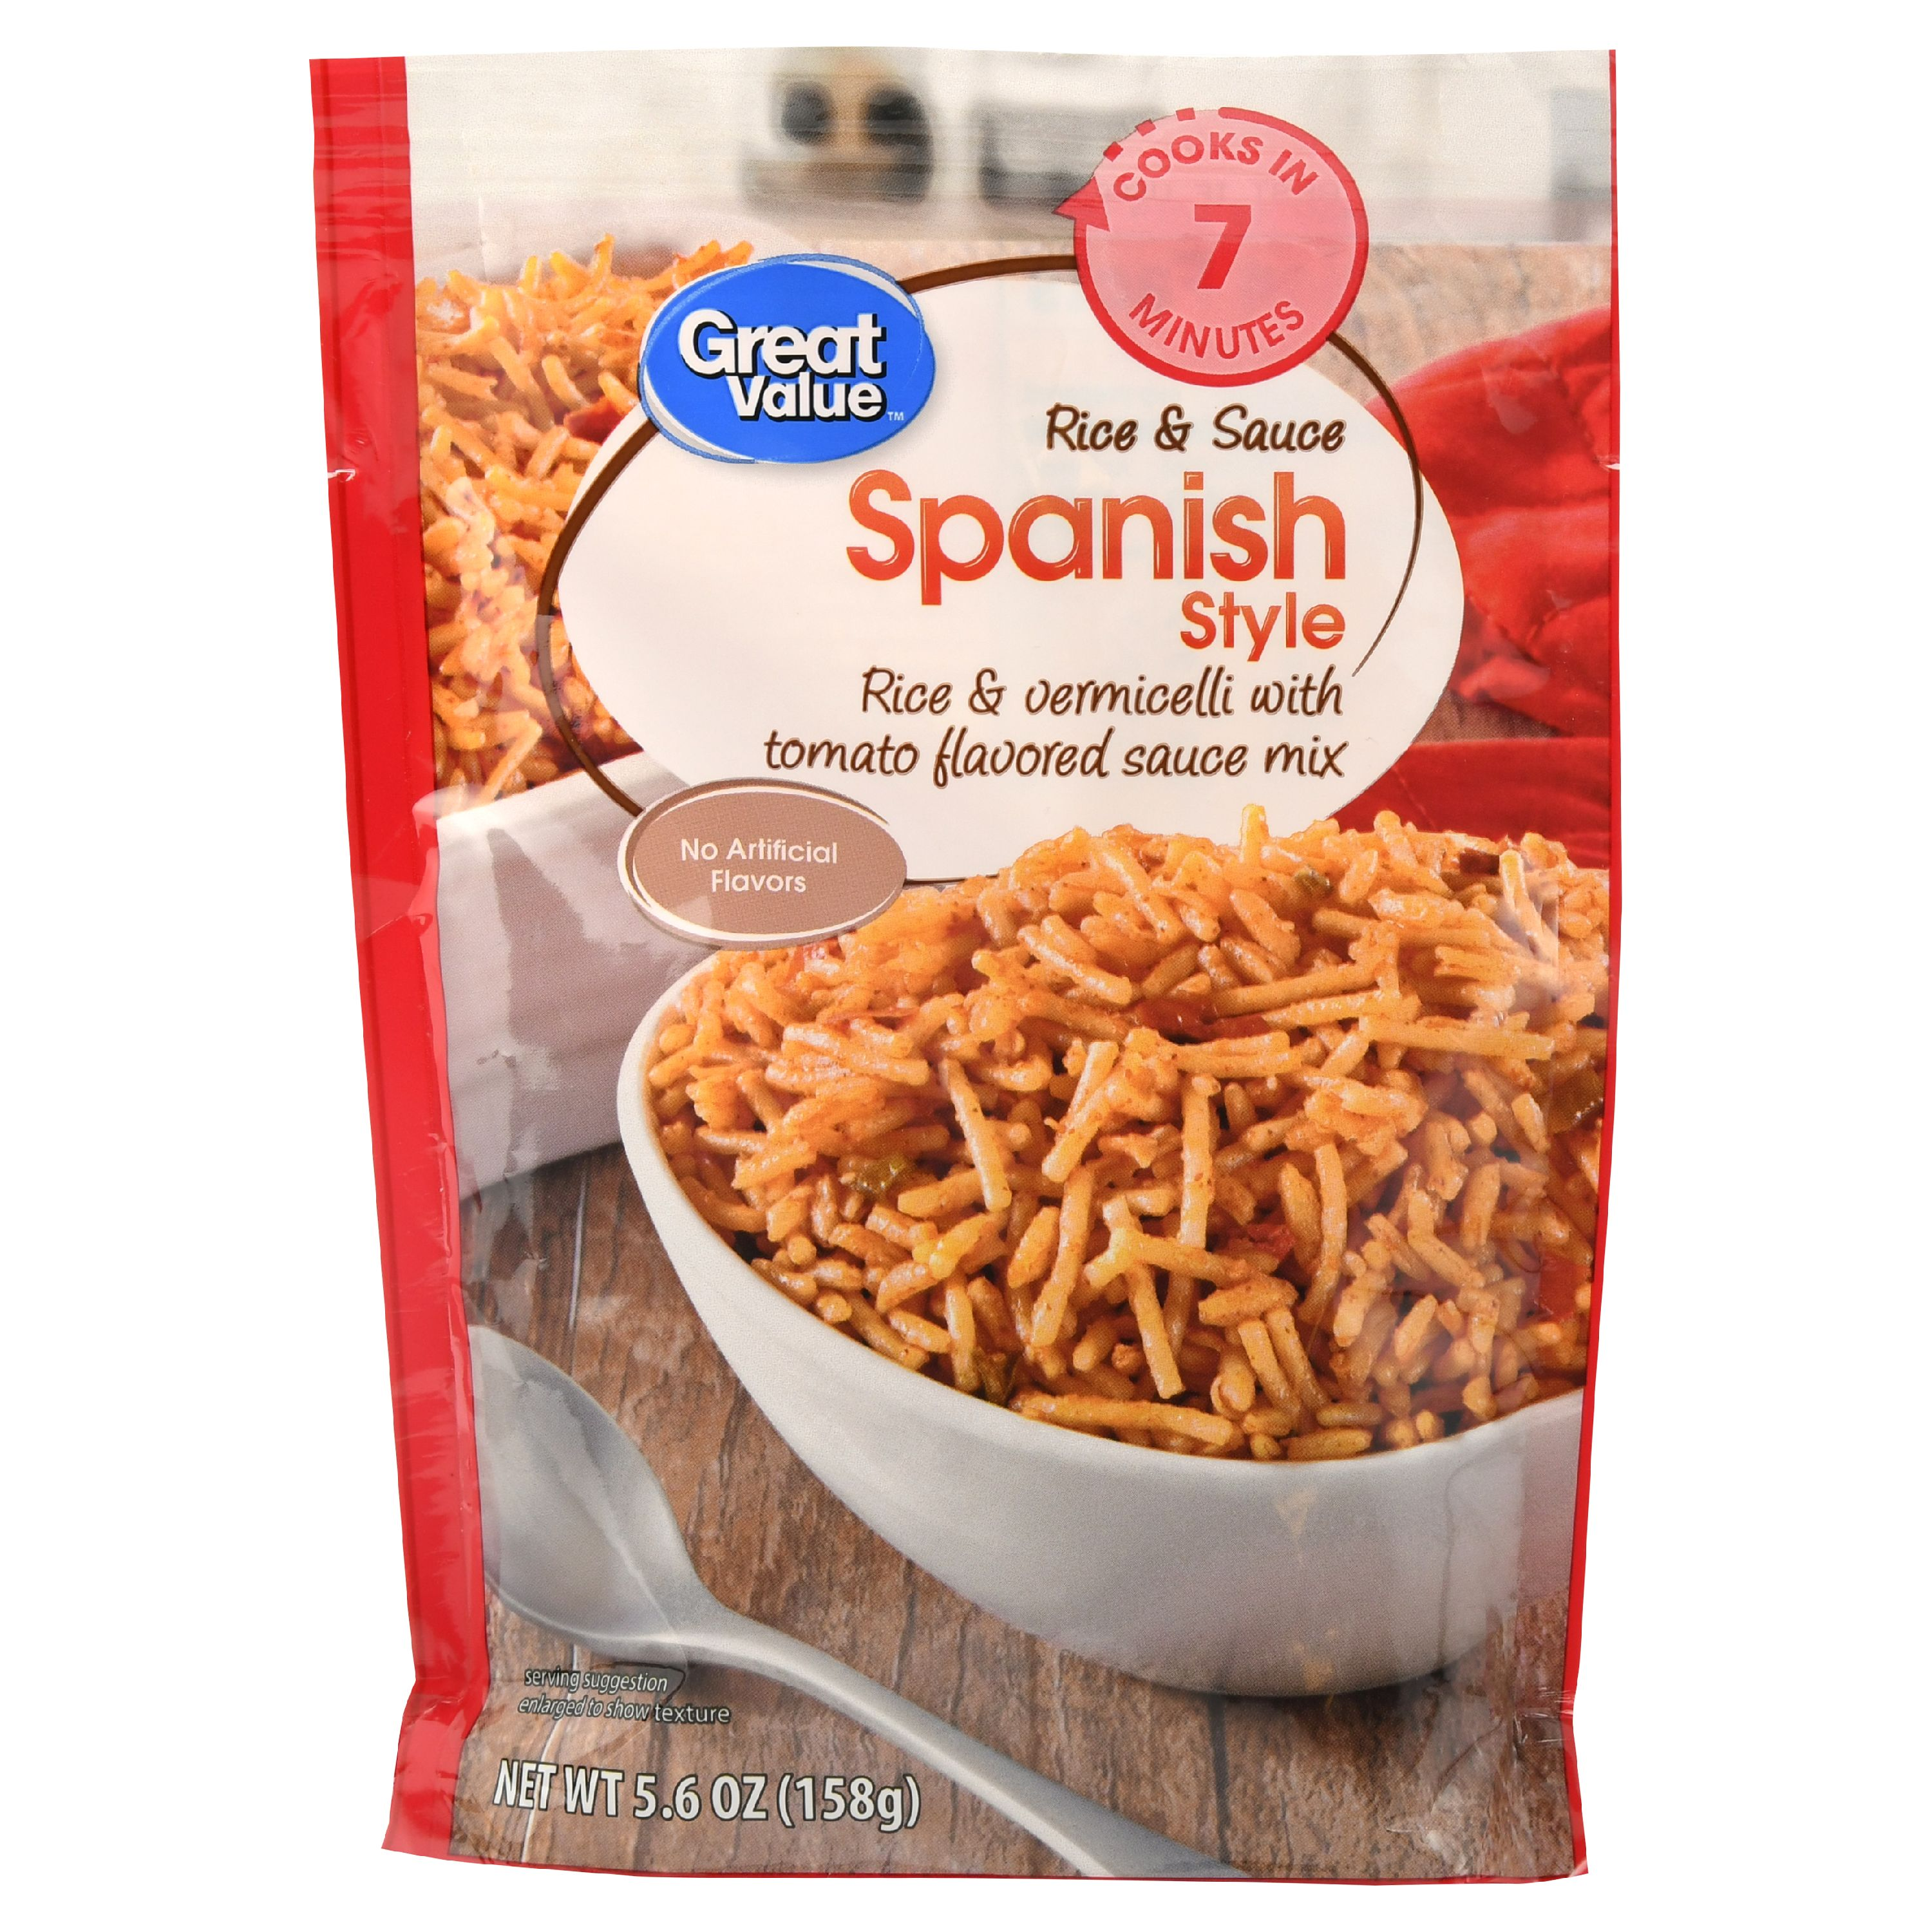 Great Value Rice & Sauce, Spanish Style, 5.6 oz